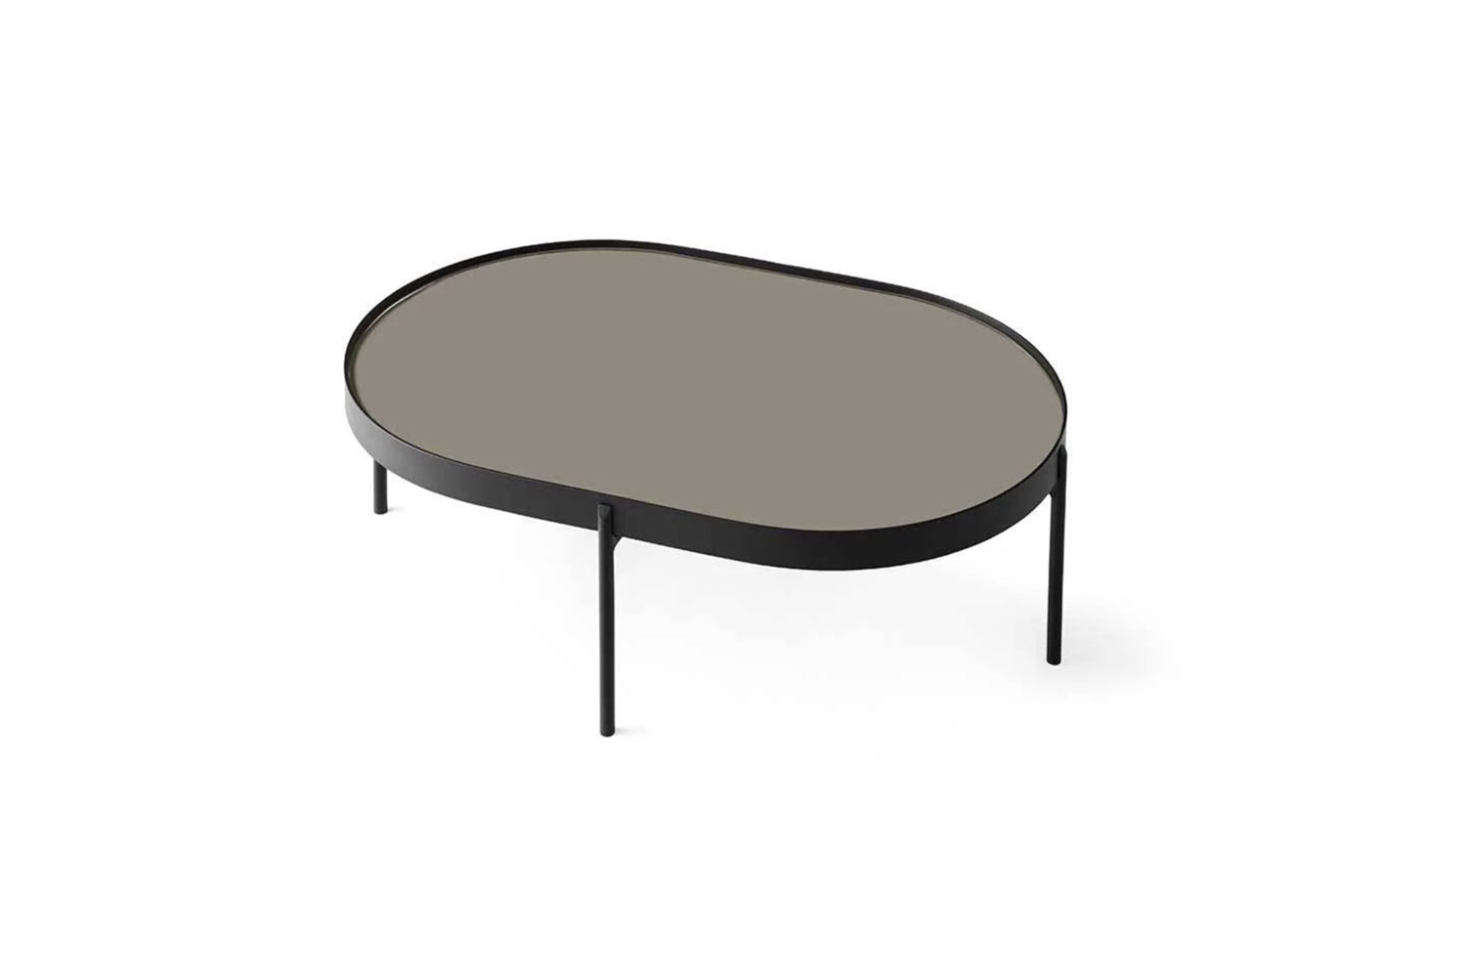 From TRNK, the Nono Tables in Beige Glass are $4.